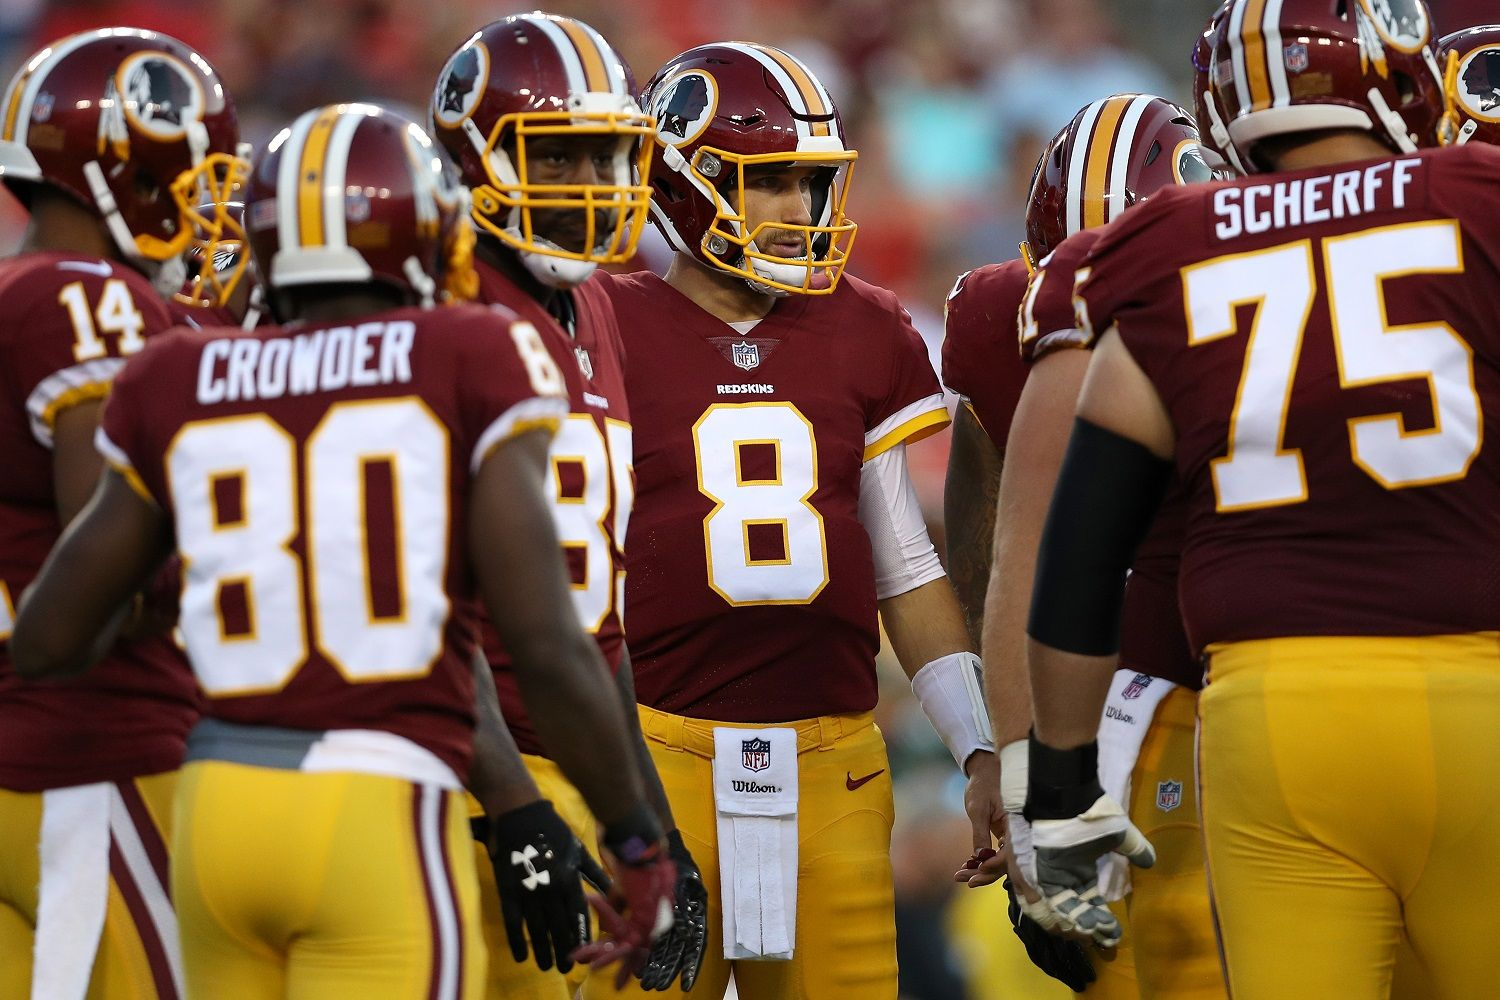 LANDOVER, MD - AUGUST 19: Quarterback Kirk Cousins #8 of the Washington Redskins stands in the huddle against the Green Bay Packers in the first half during a preseason game at FedExField on August 19, 2017 in Landover, Maryland. (Photo by Patrick Smith/Getty Images)